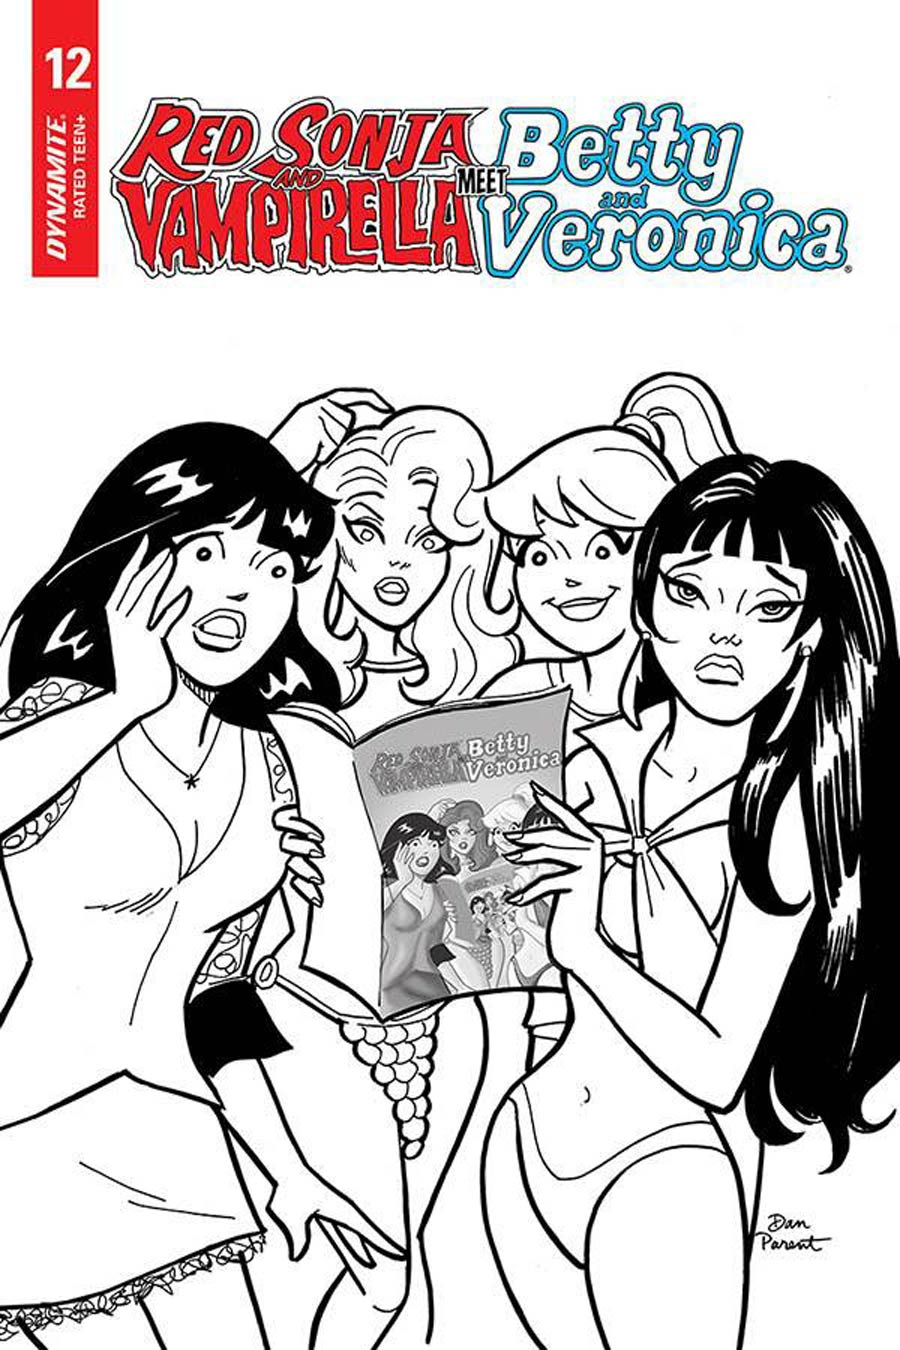 Red Sonja And Vampirella Meet Betty And Veronica #12 Cover F Incentive Dan Parent Black & White Cover